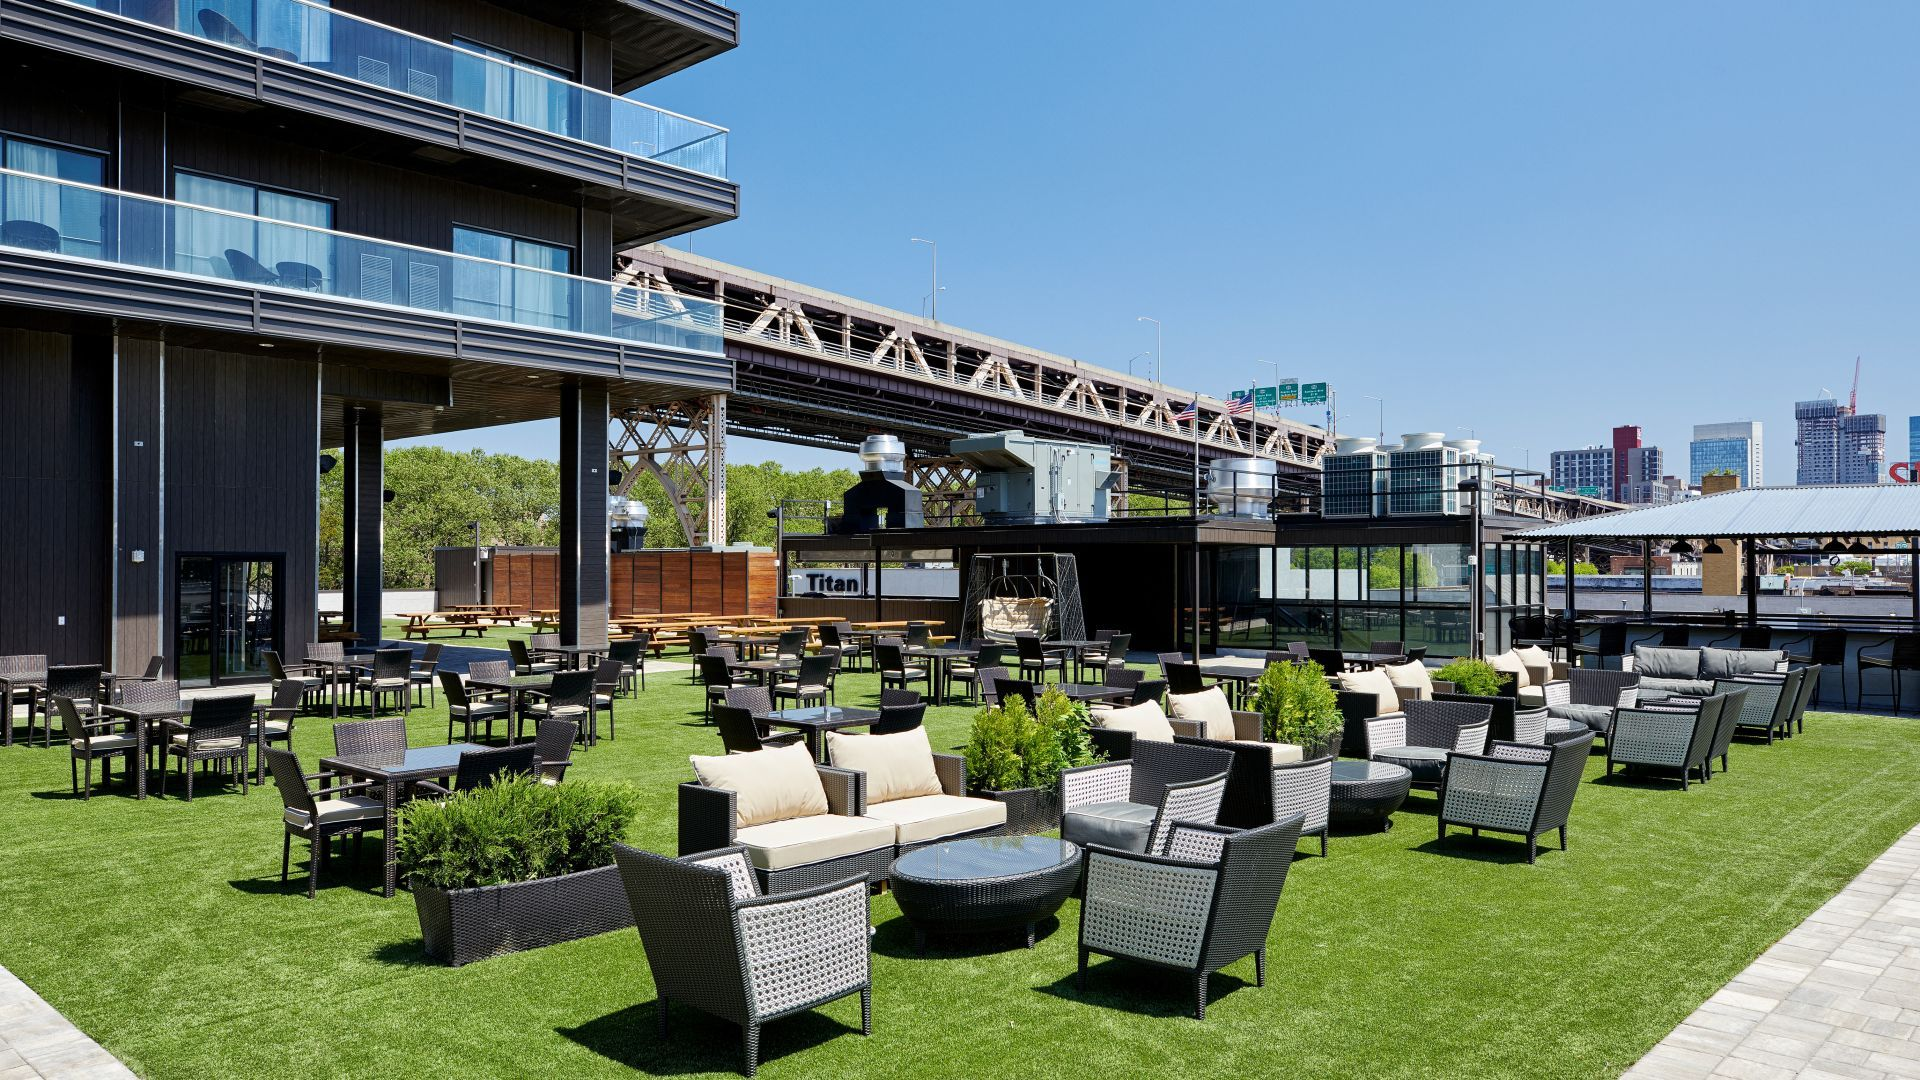 An Urban Oasis Elevated Beer Garden and Outdoor Eatery.